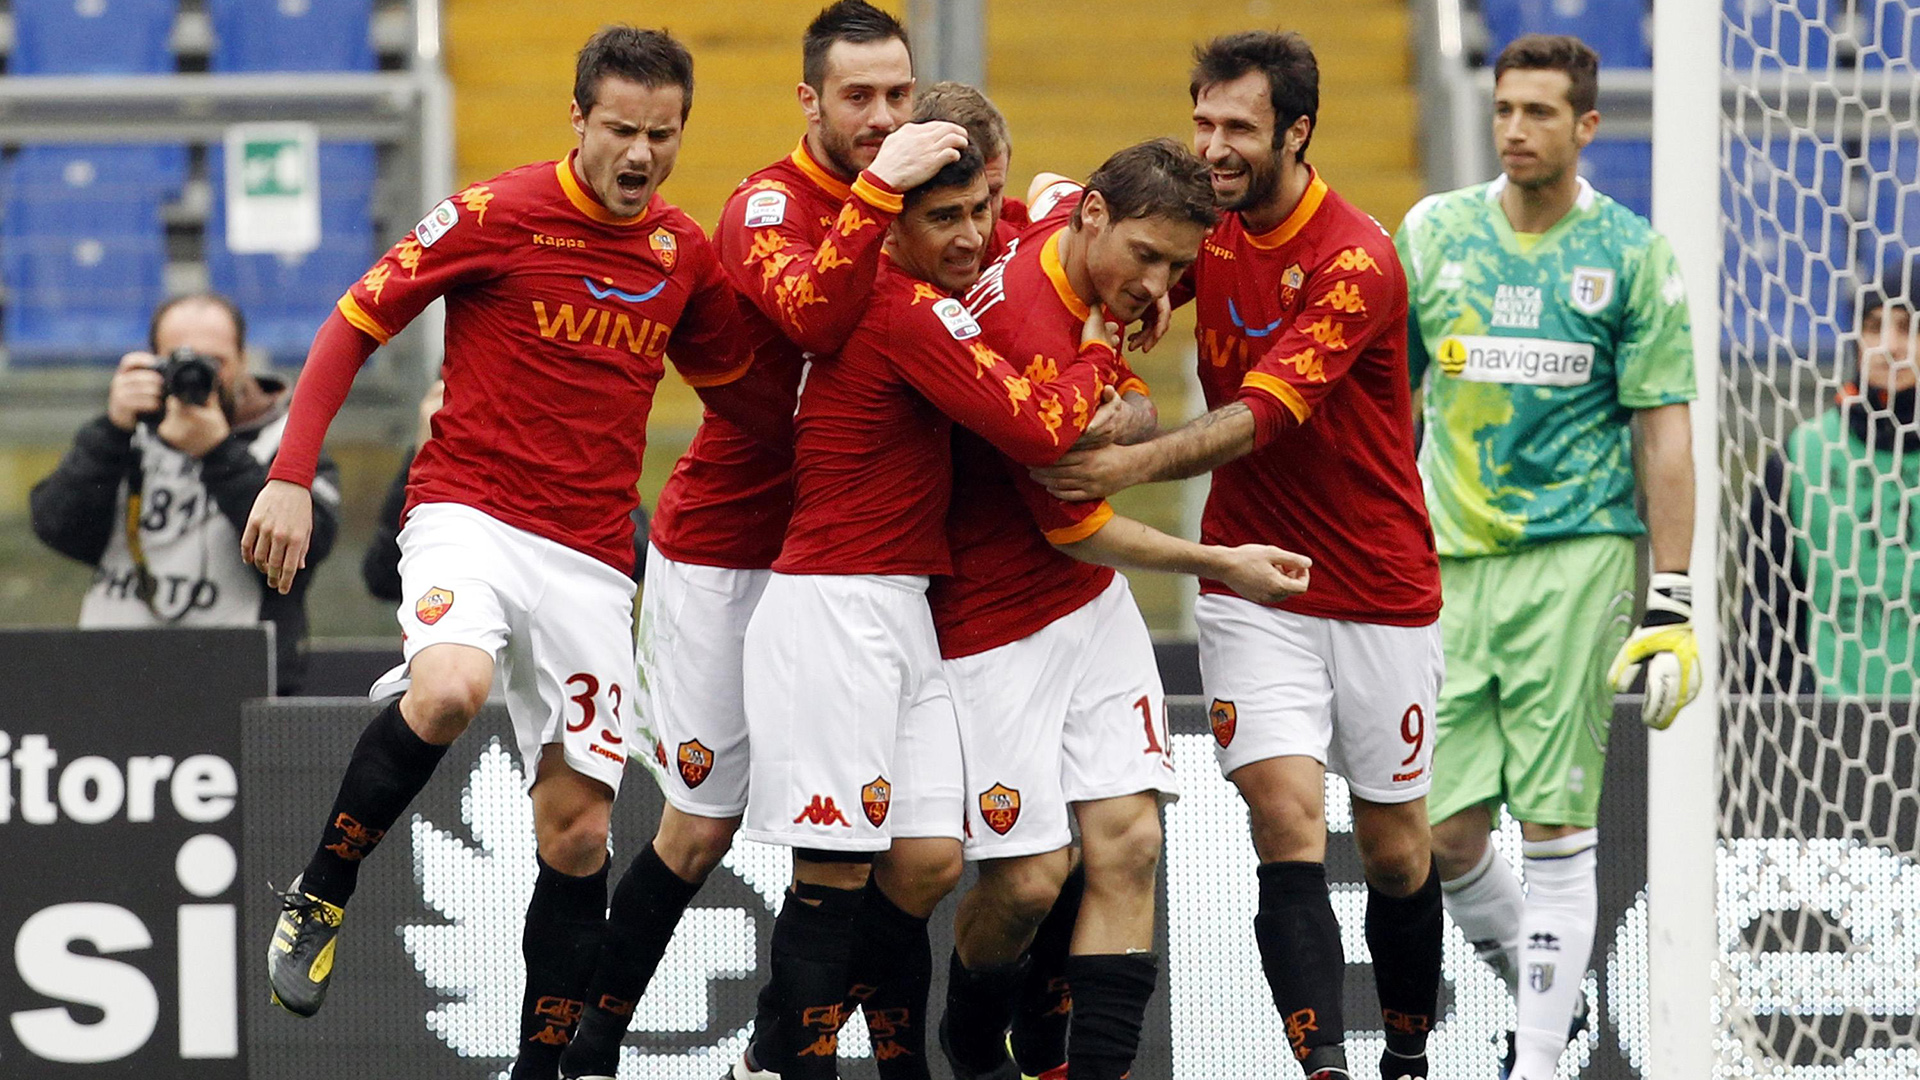 AS Roma's captain Francesco Totti (3rd R) celebrates with his teammates after scoring against Parma during their Italian Serie A soccer match at the Olympic stadium in Rome February 27, 2011. REUTERS/Giampiero Sposito (ITALY - Tags: SPORT SOCCER)